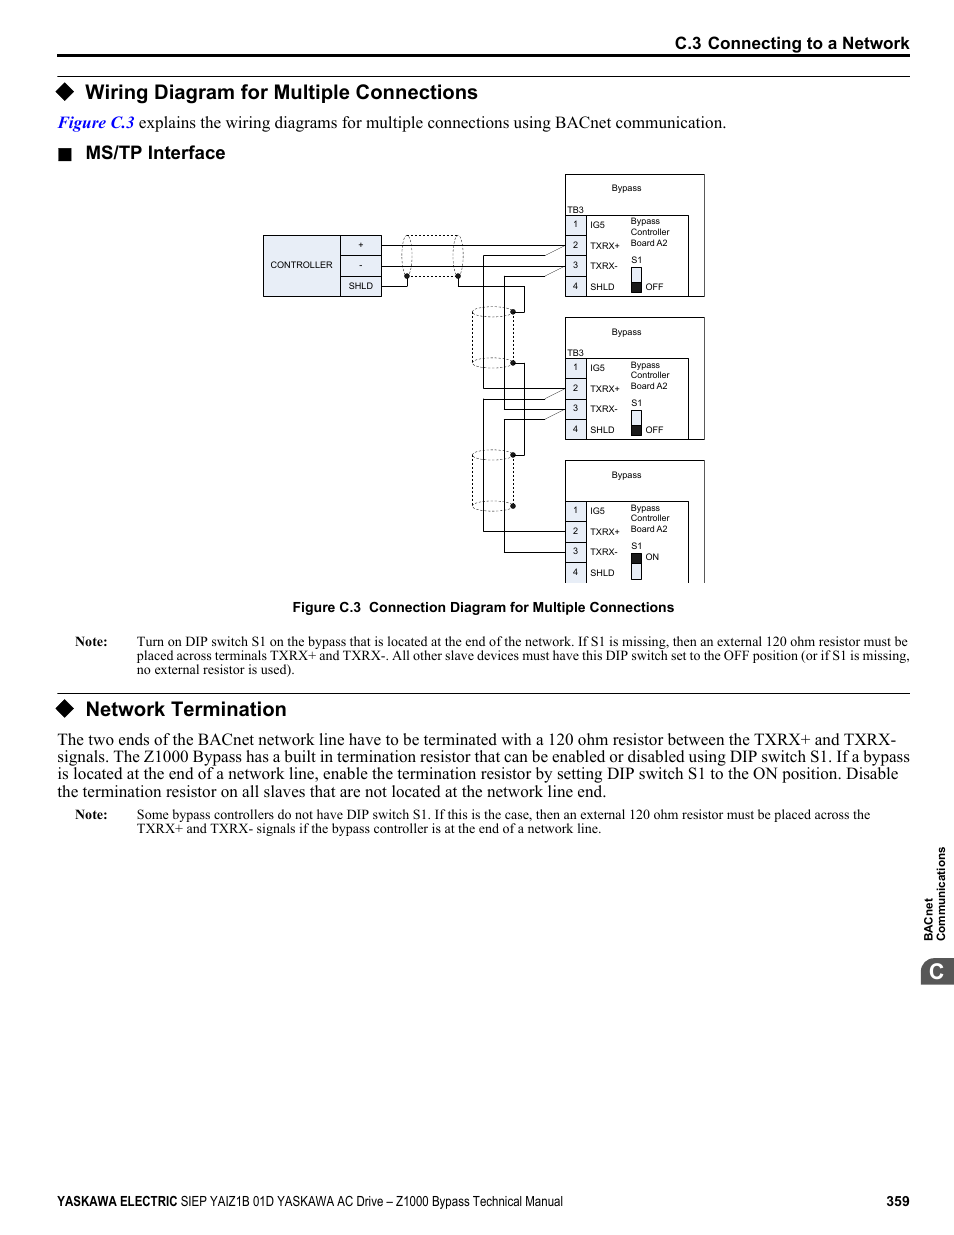 Wiring diagram for multiple connections network termination mstp wiring diagram for multiple connections network termination mstp interface yaskawa ac drive z1000 bypass technical manual user manual page 359 462 asfbconference2016 Gallery